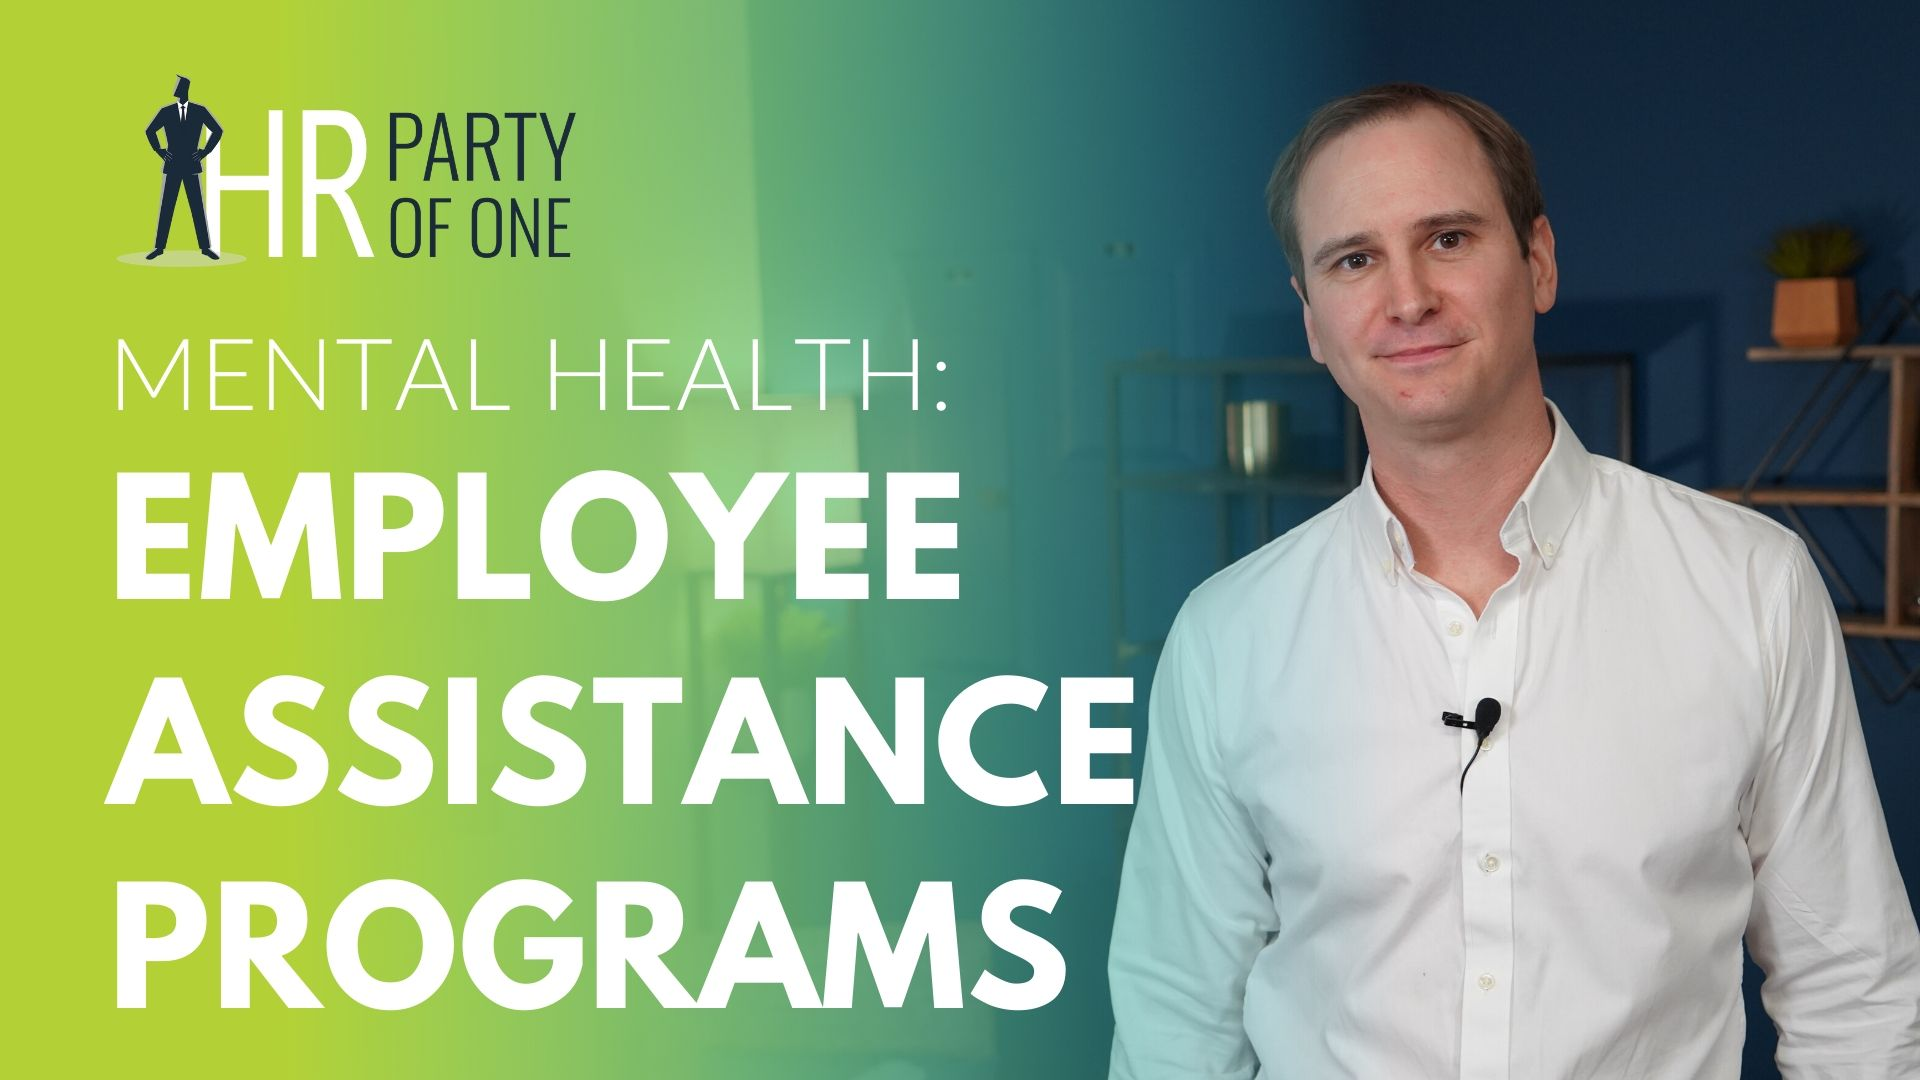 Mental Health: Employee Assistance Programs (EAP)